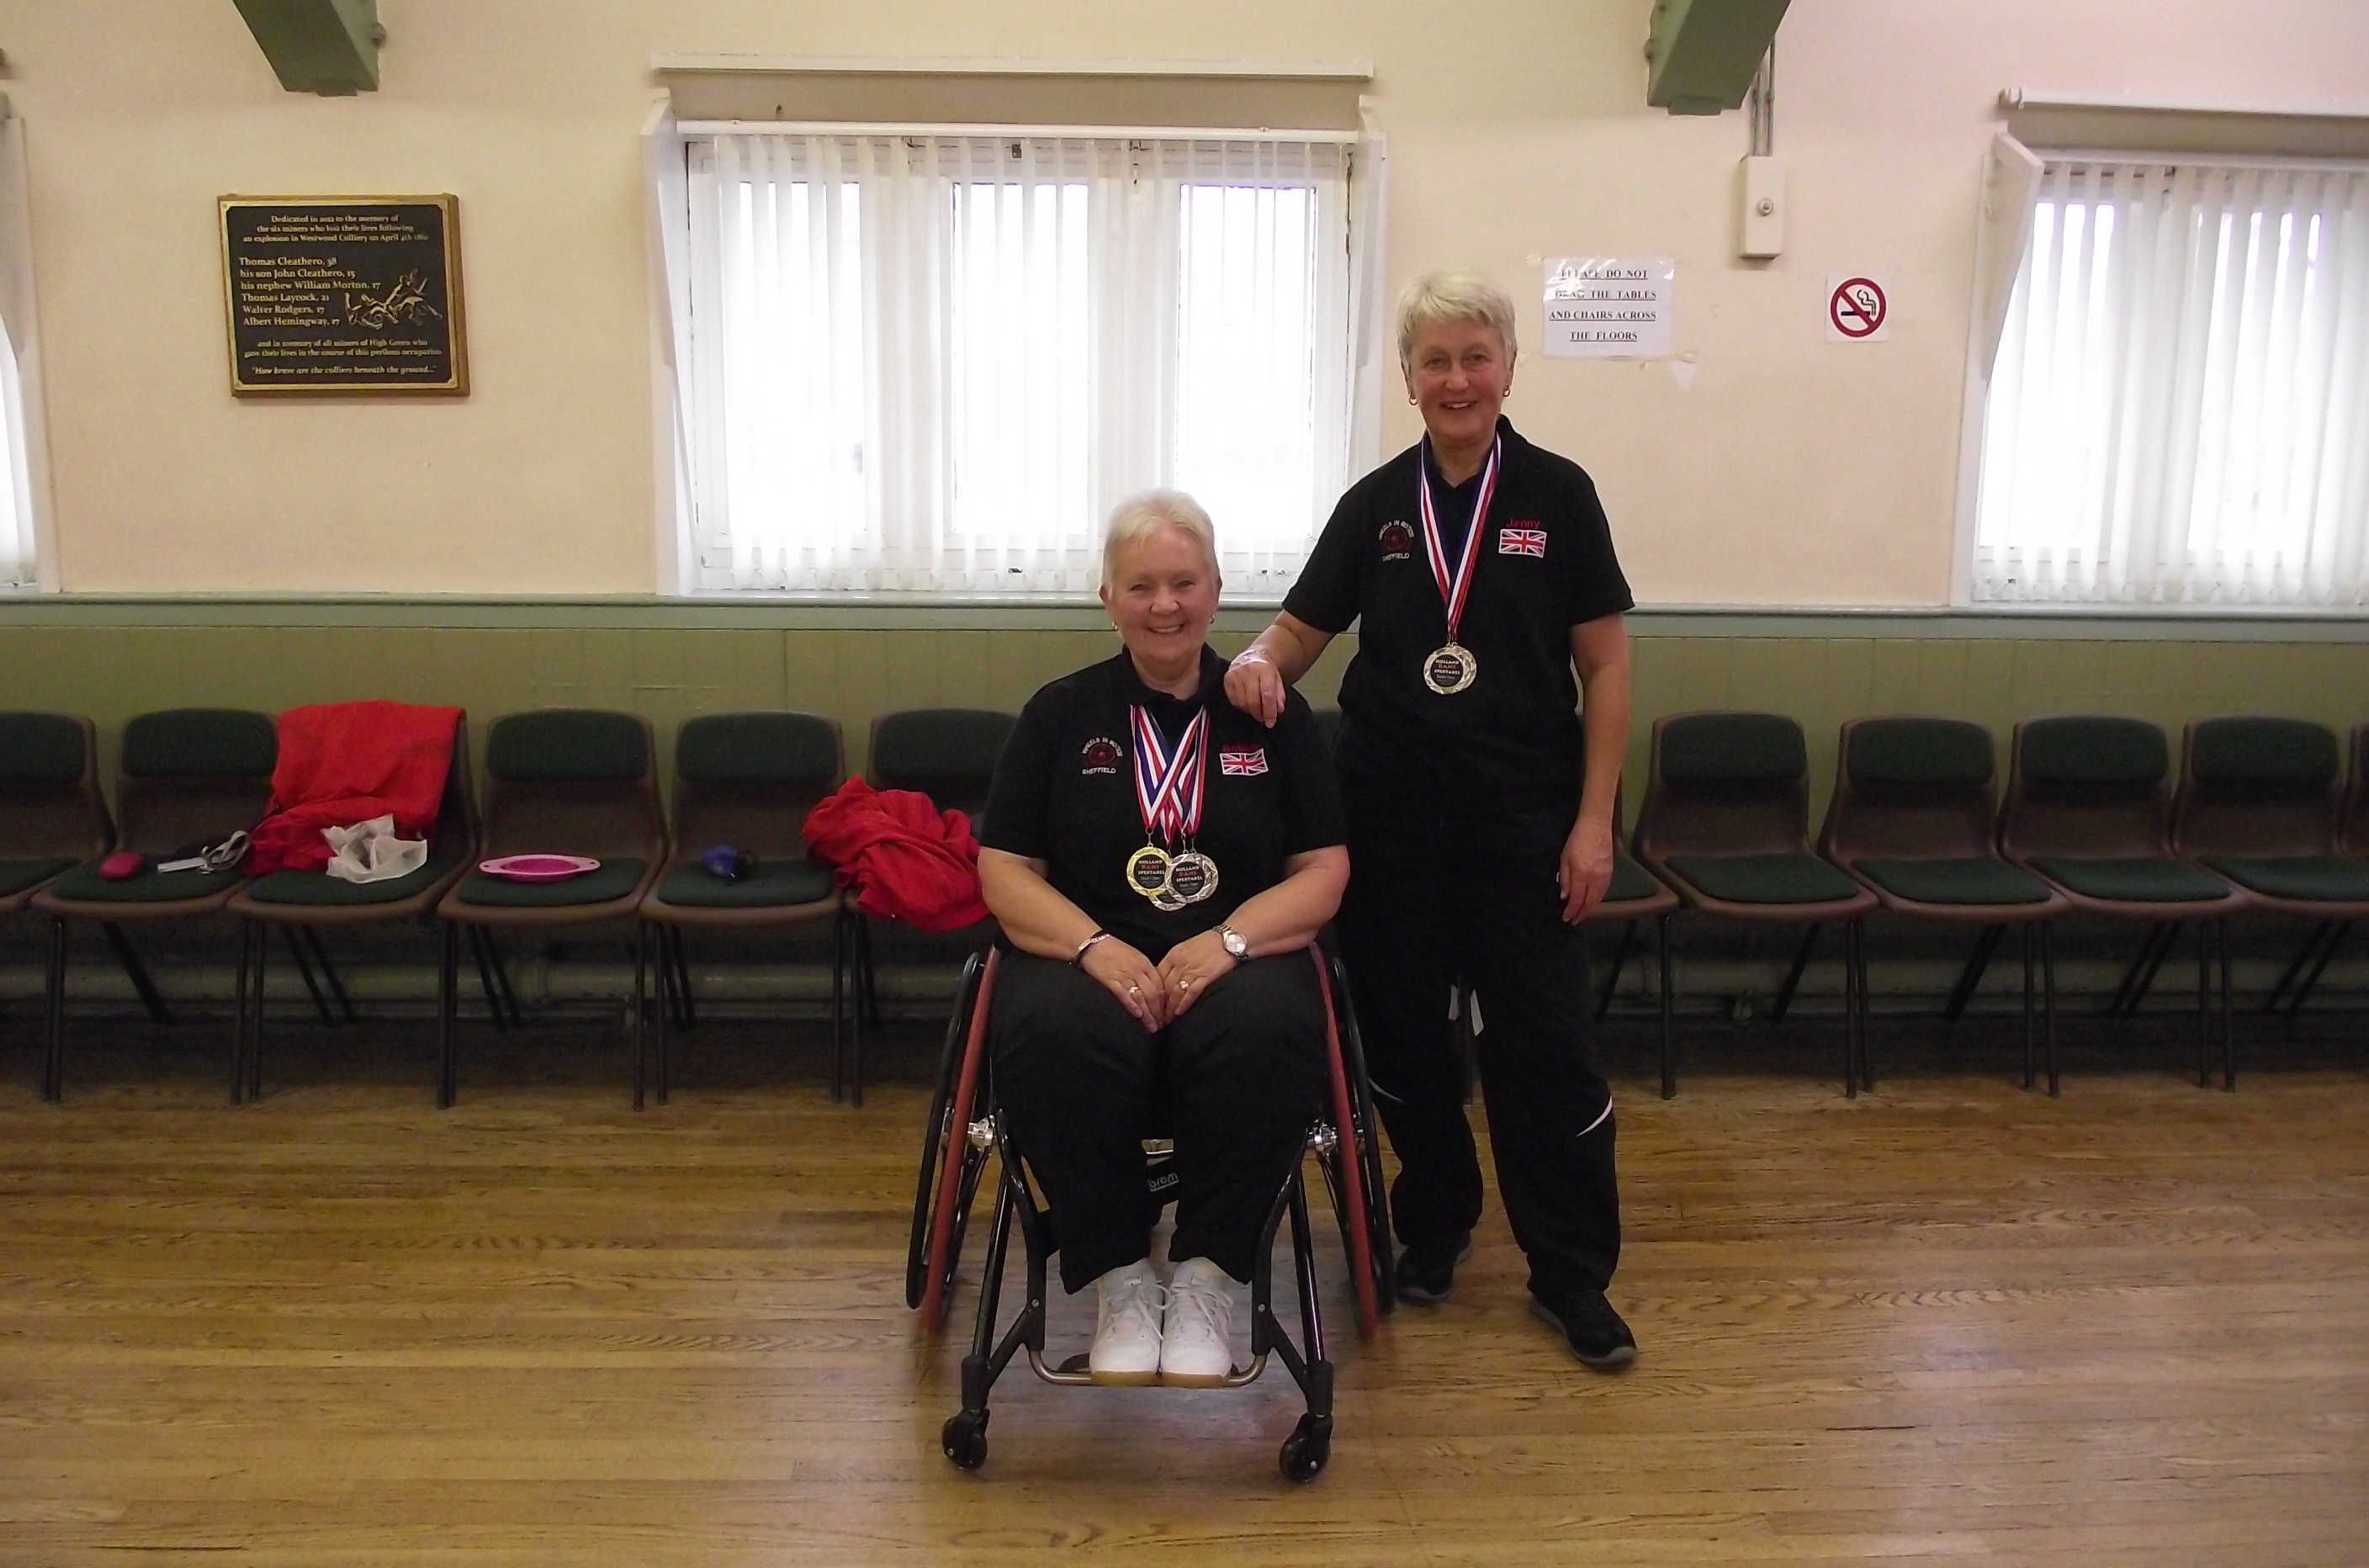 Bobbie with her coach and medals